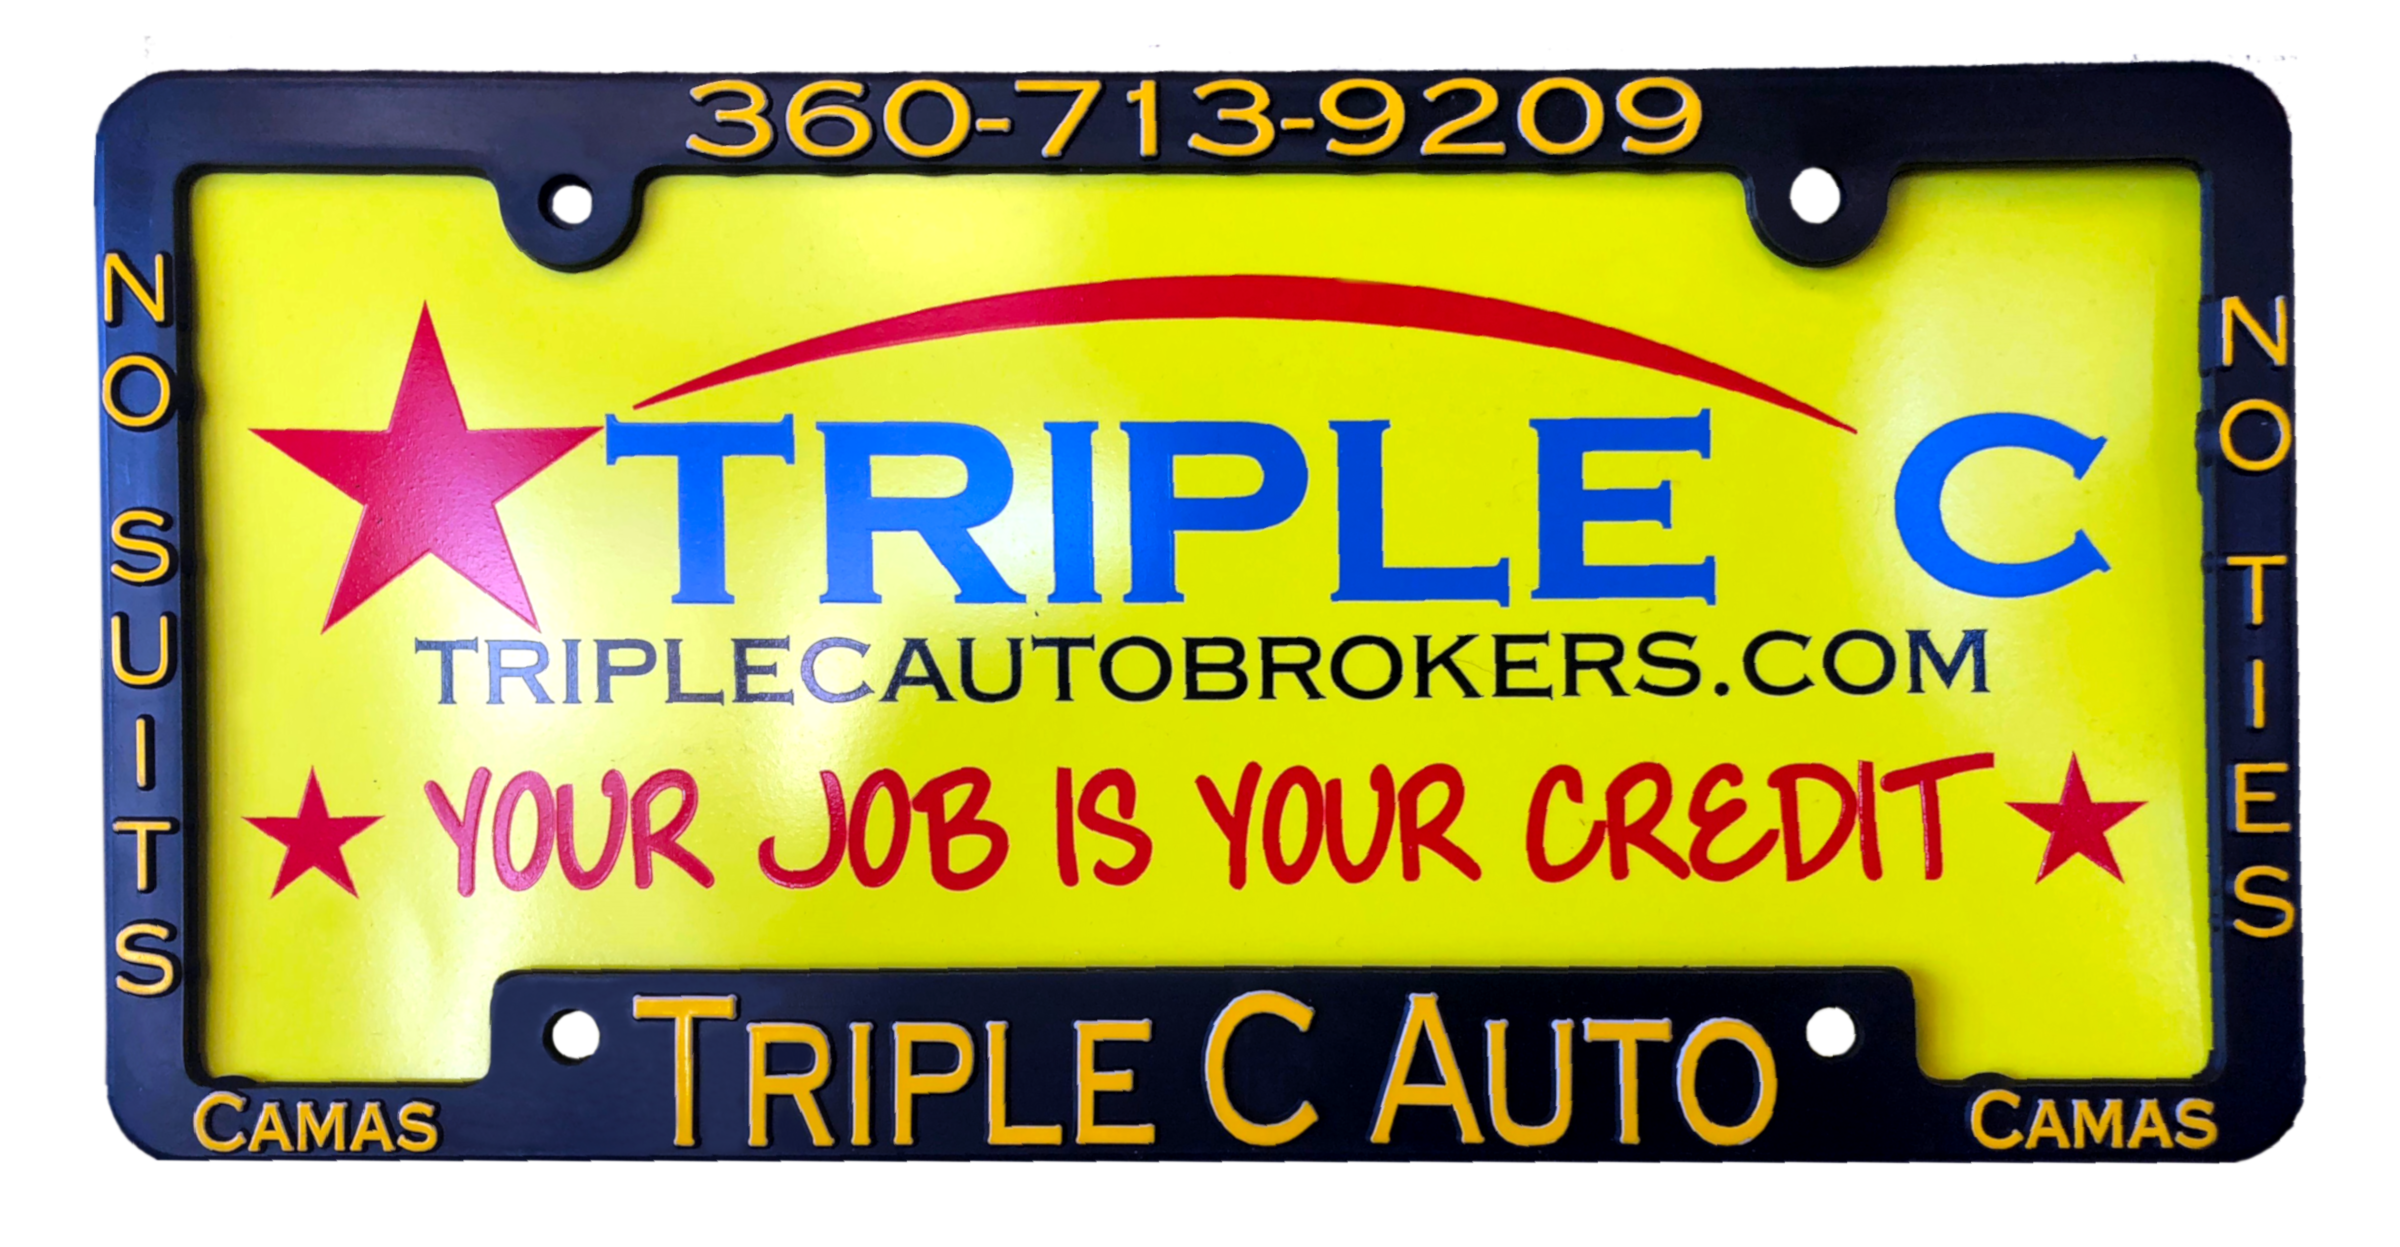 Triple C Auto Brokers